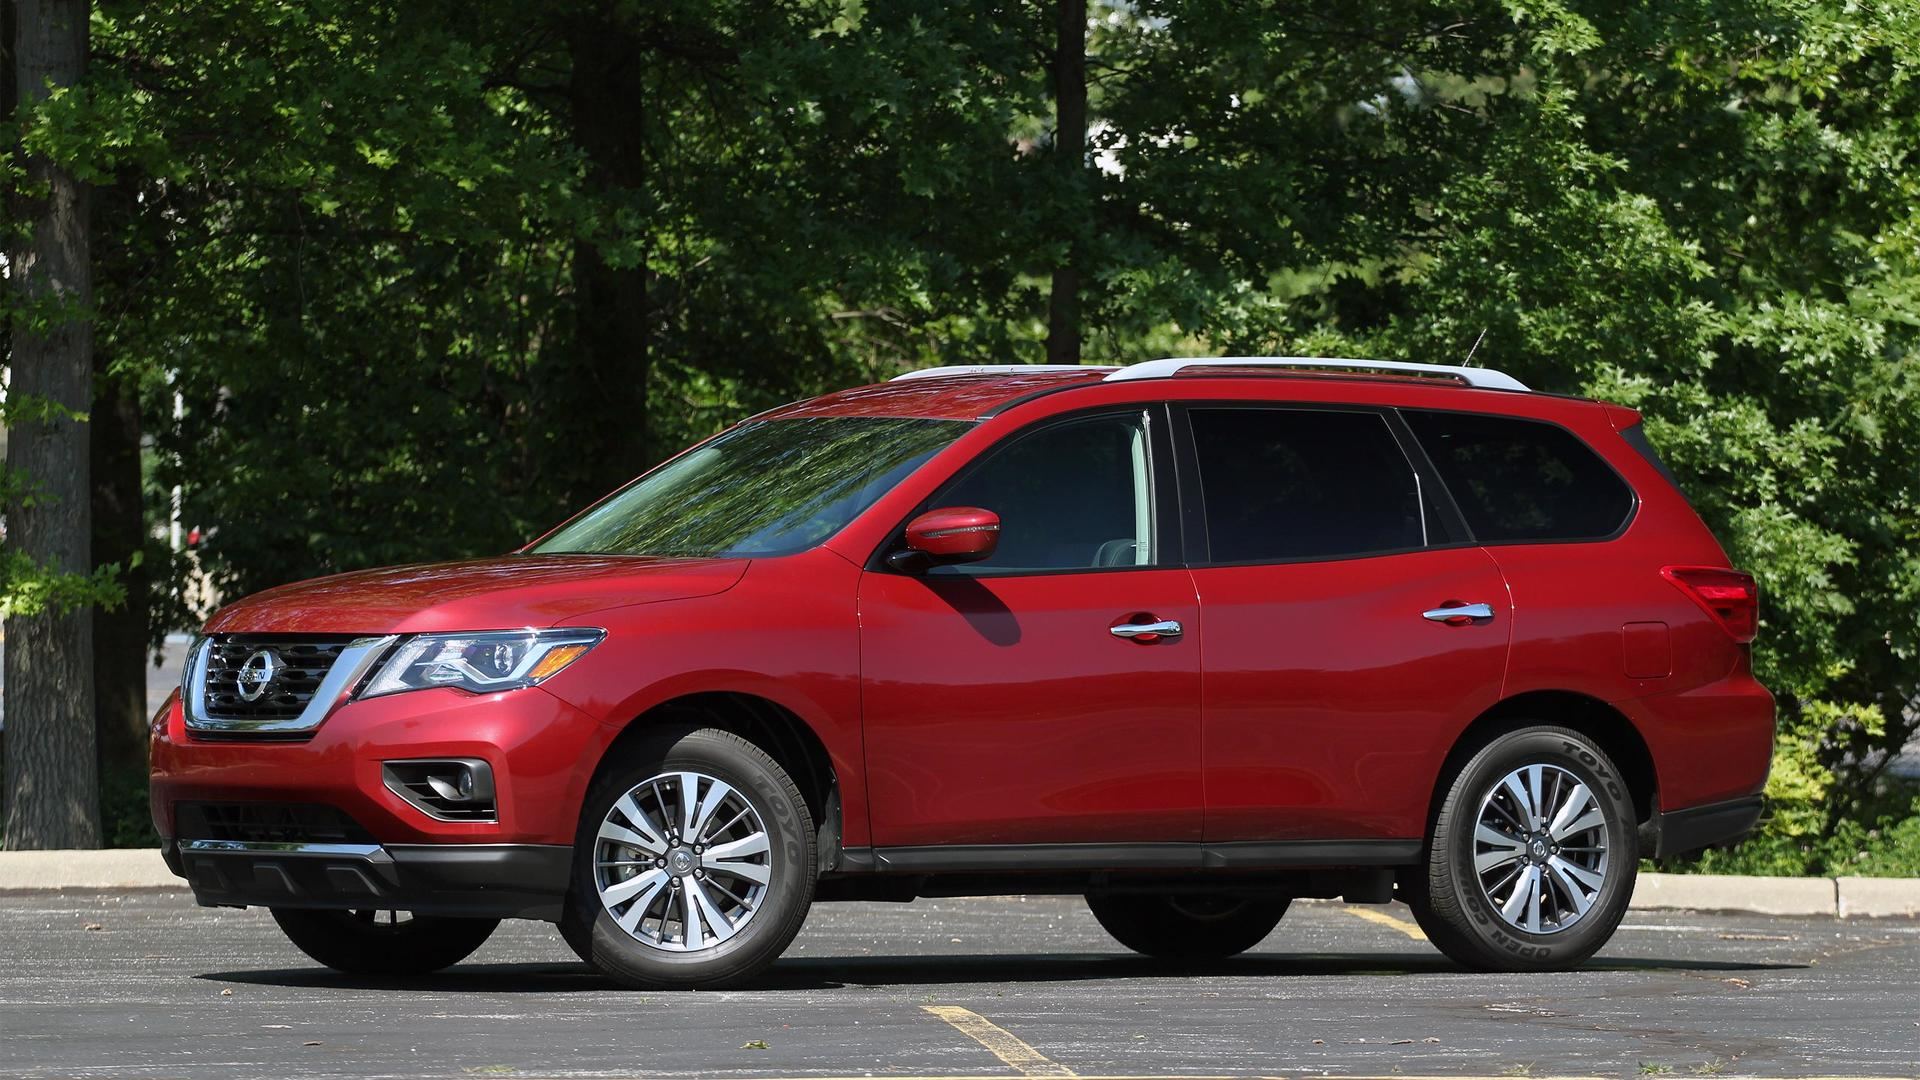 2017 nissan pathfinder review keeping pace with maturing. Black Bedroom Furniture Sets. Home Design Ideas